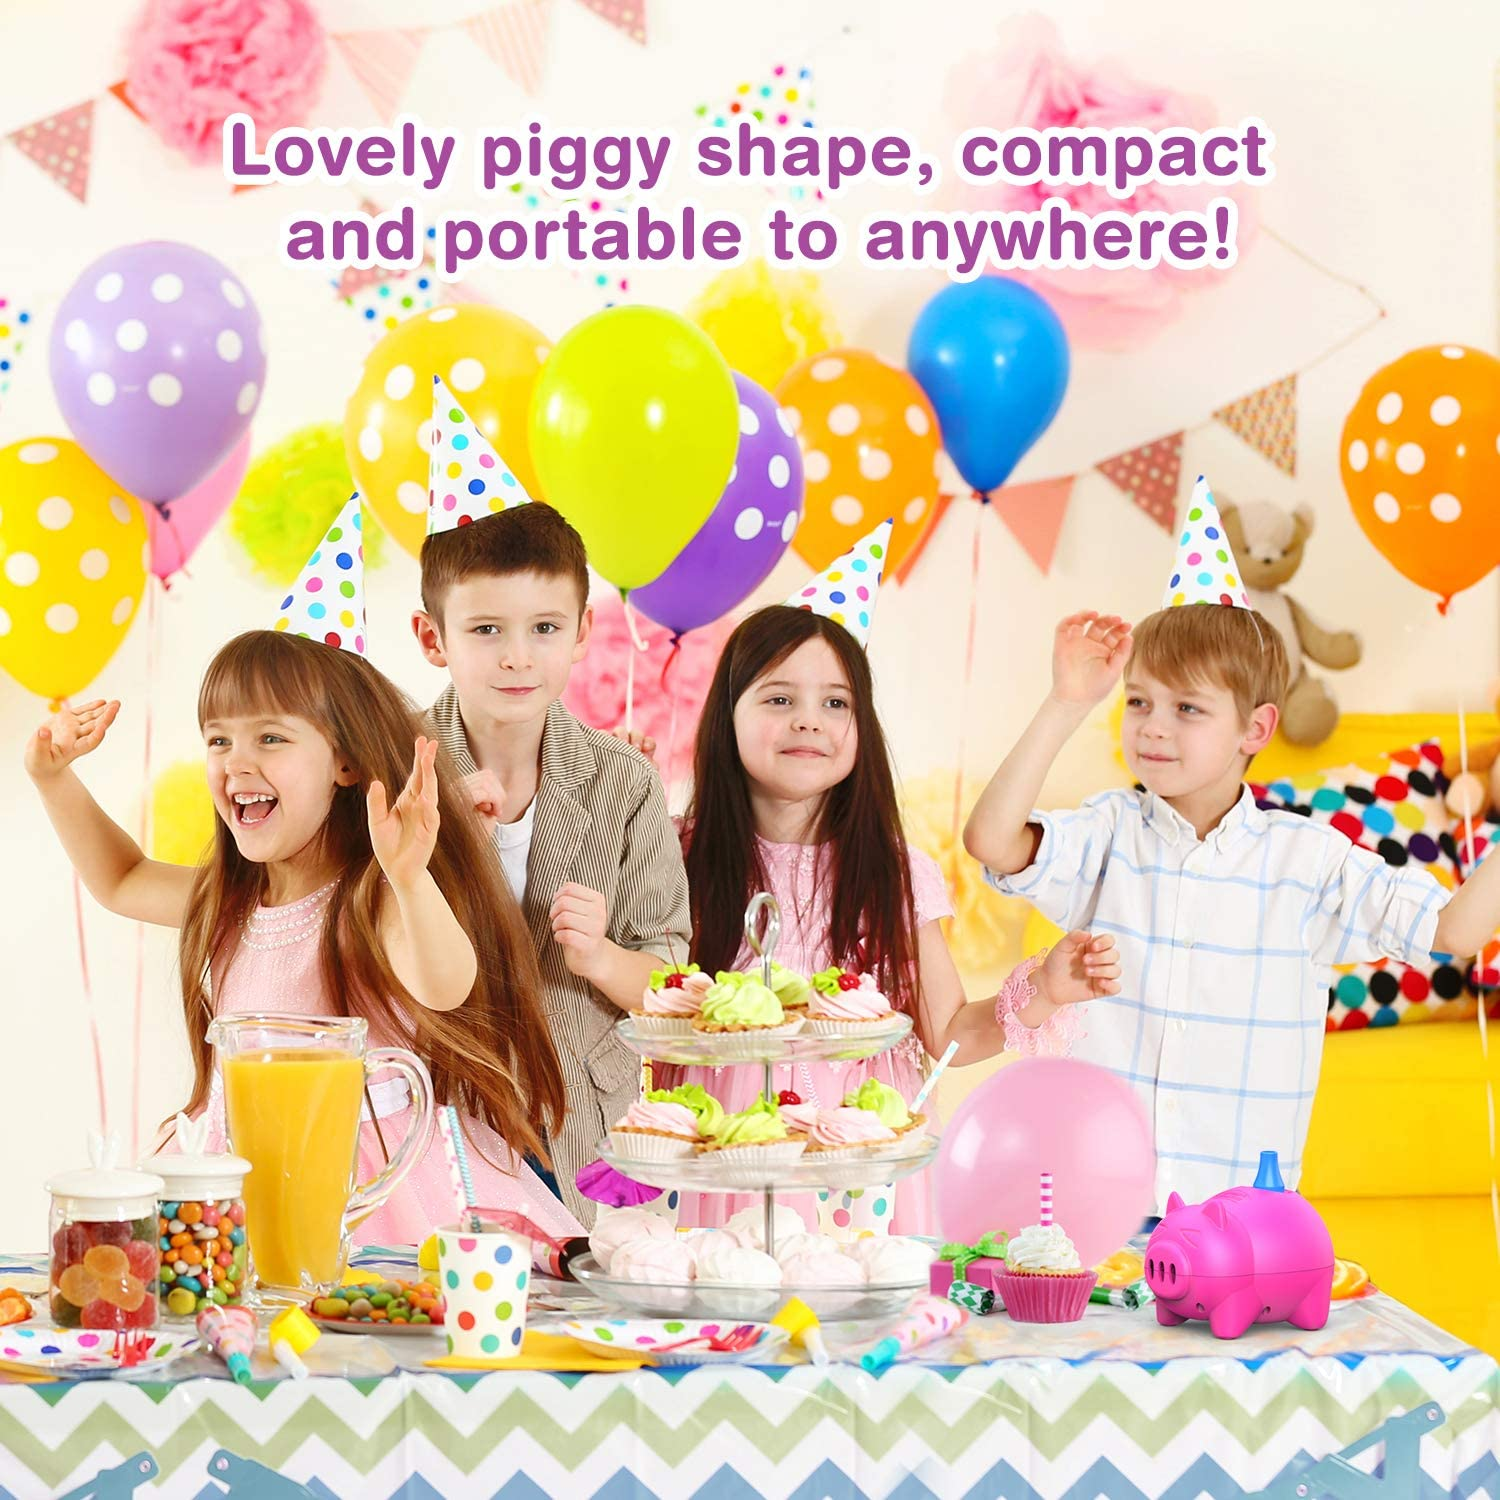 Birthday Dr.meter Electric Balloon Pump Promotional Activities and Festival Decoration Portable Piggy shape Balloon Inflator Air Blower for Christmas Decorations Wedding Party